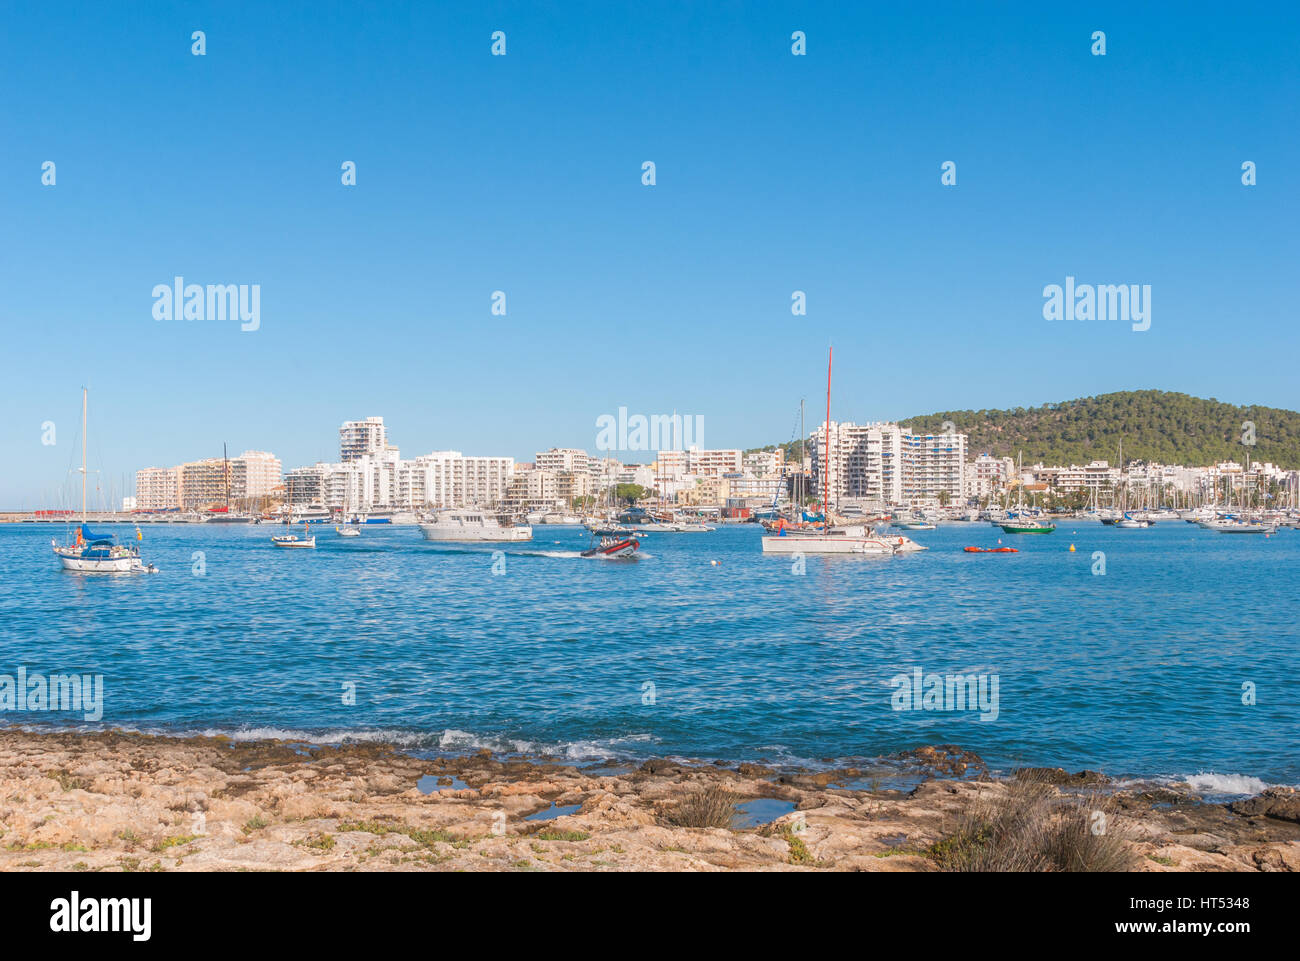 Boats in Ibiza marina harbour in the morning of a warm sunny day in St Antoni de Portmany, Balearic Islands, Spain. - Stock Image